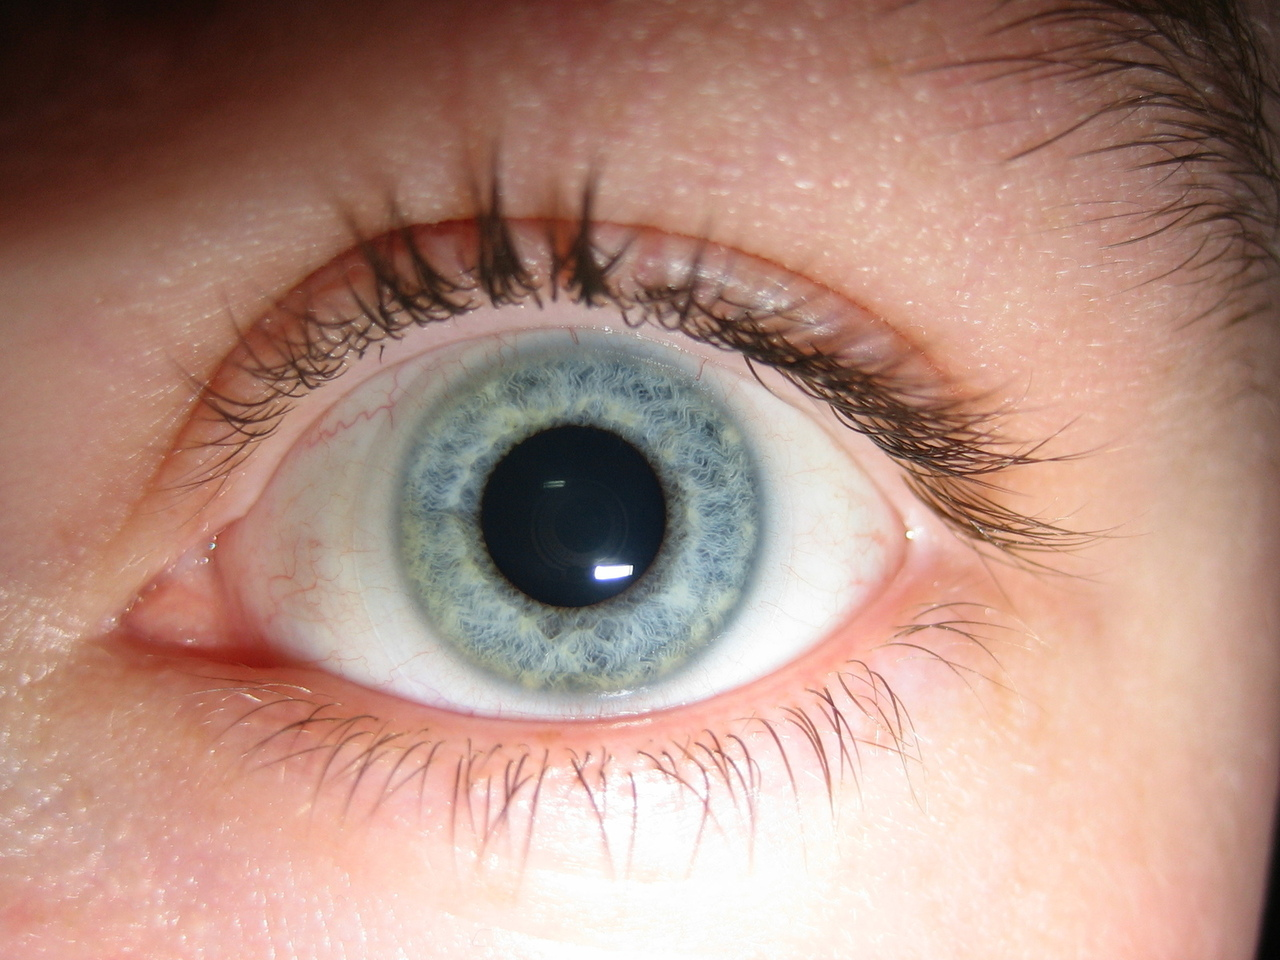 CNN and The BBC Report Successes in Stem Cell Therapy for Sight Disorders